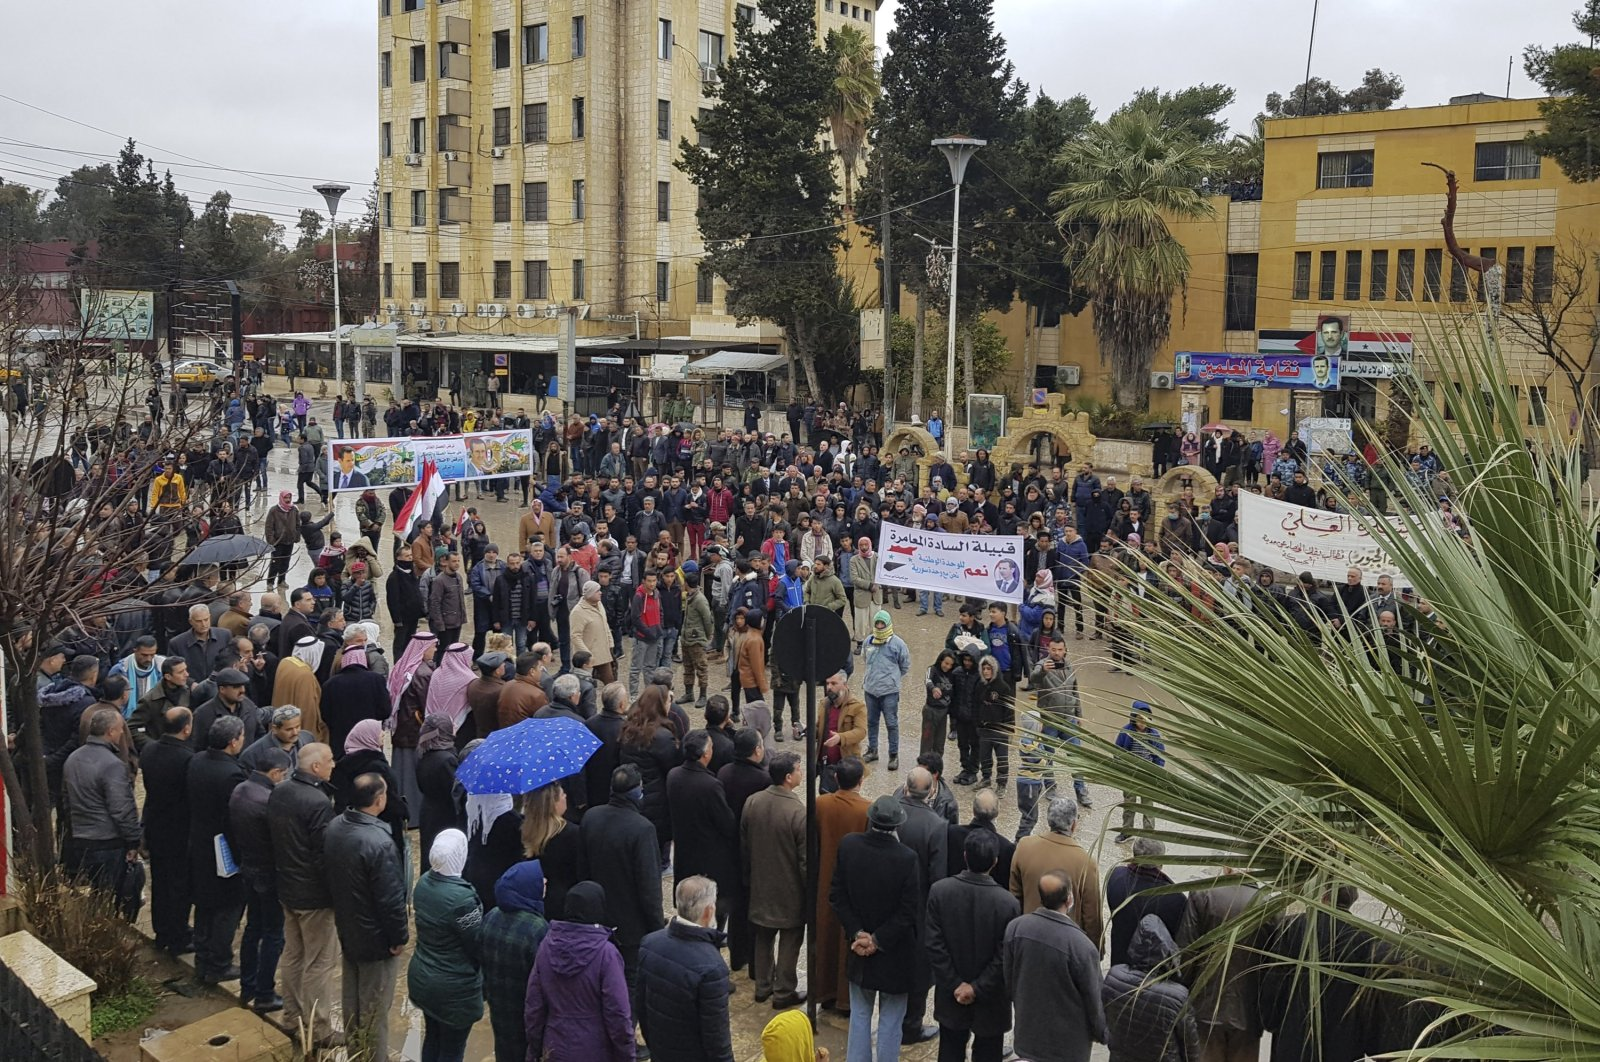 Pro-regime demonstrators protest the siege on their neighborhood by YPG forces, in Hassakeh, Syria, Jan. 31, 2021. (AP Photo)